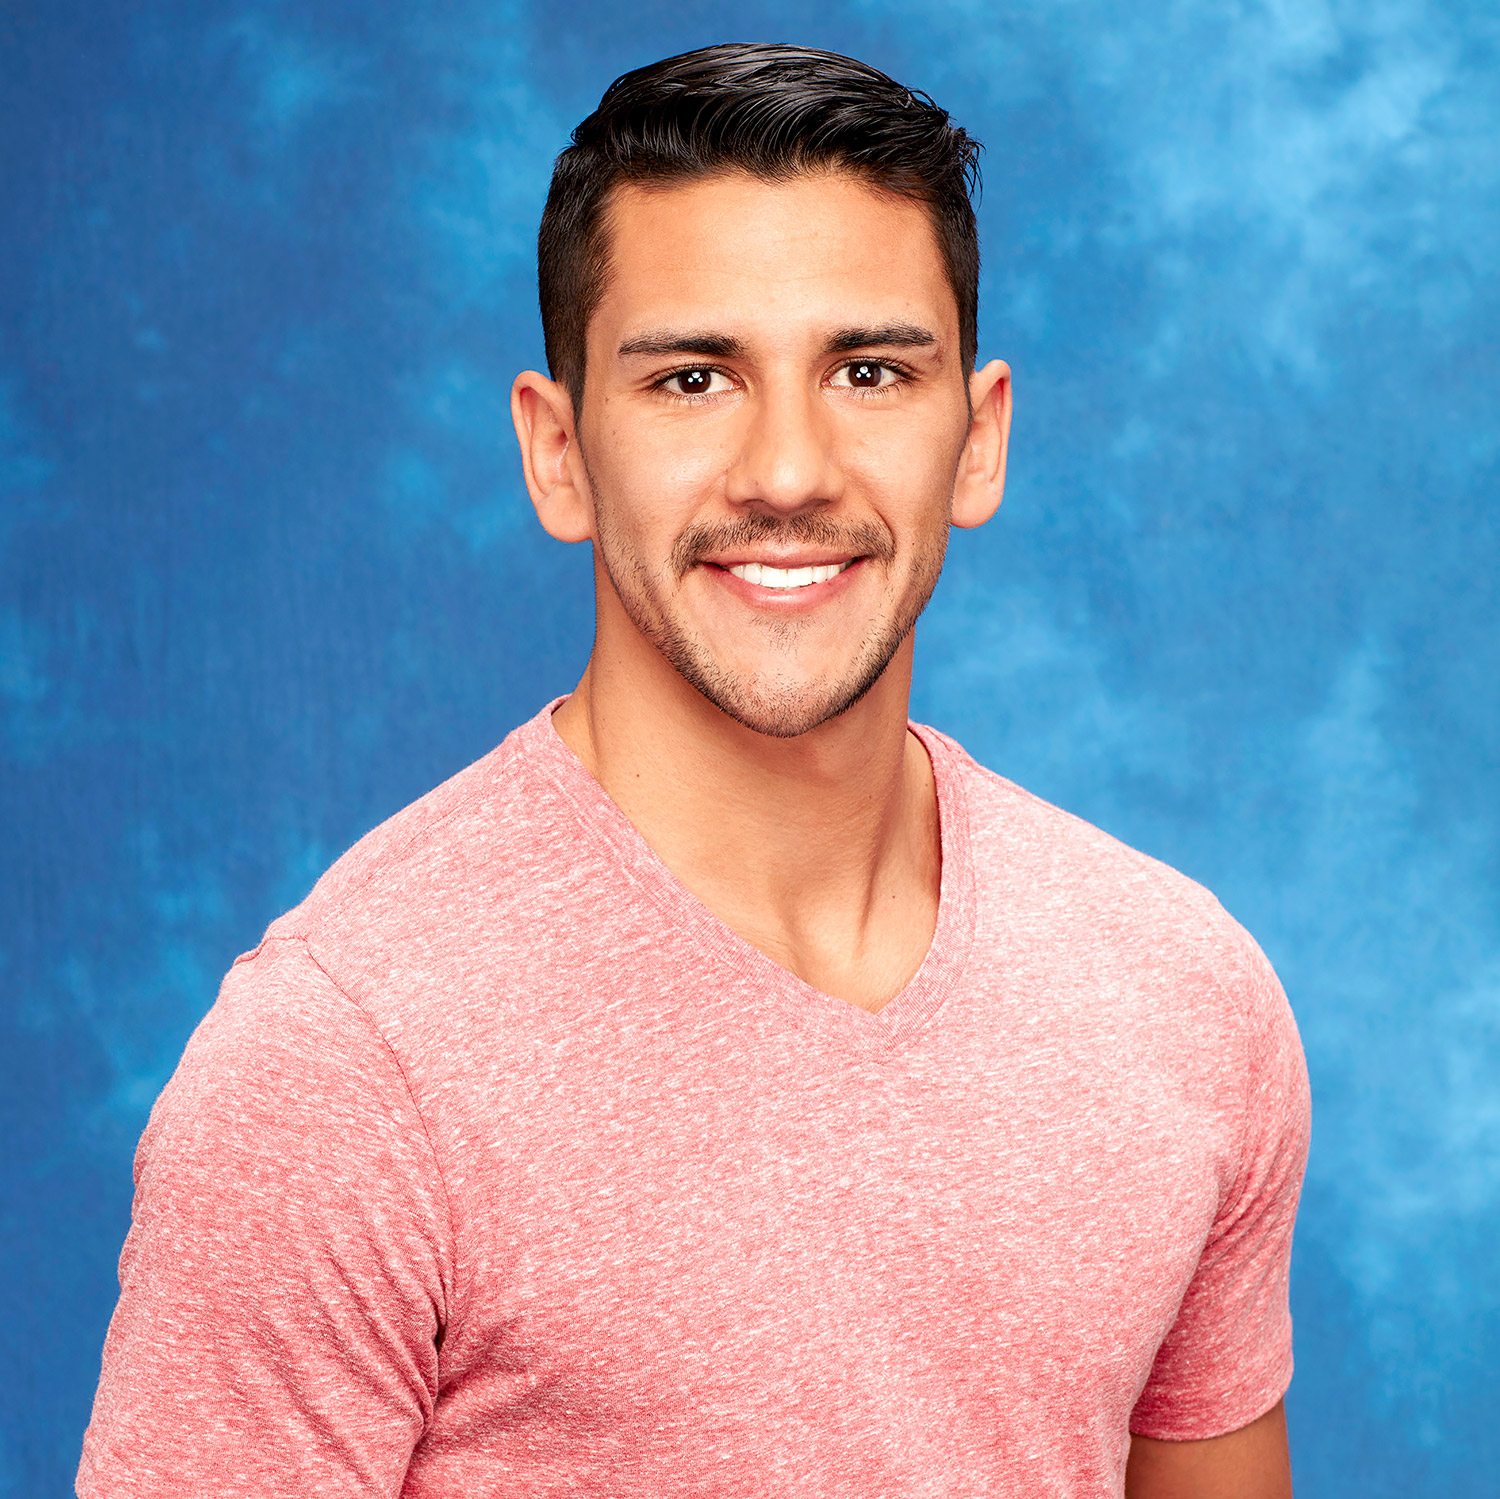 Pete From The Bachelorette